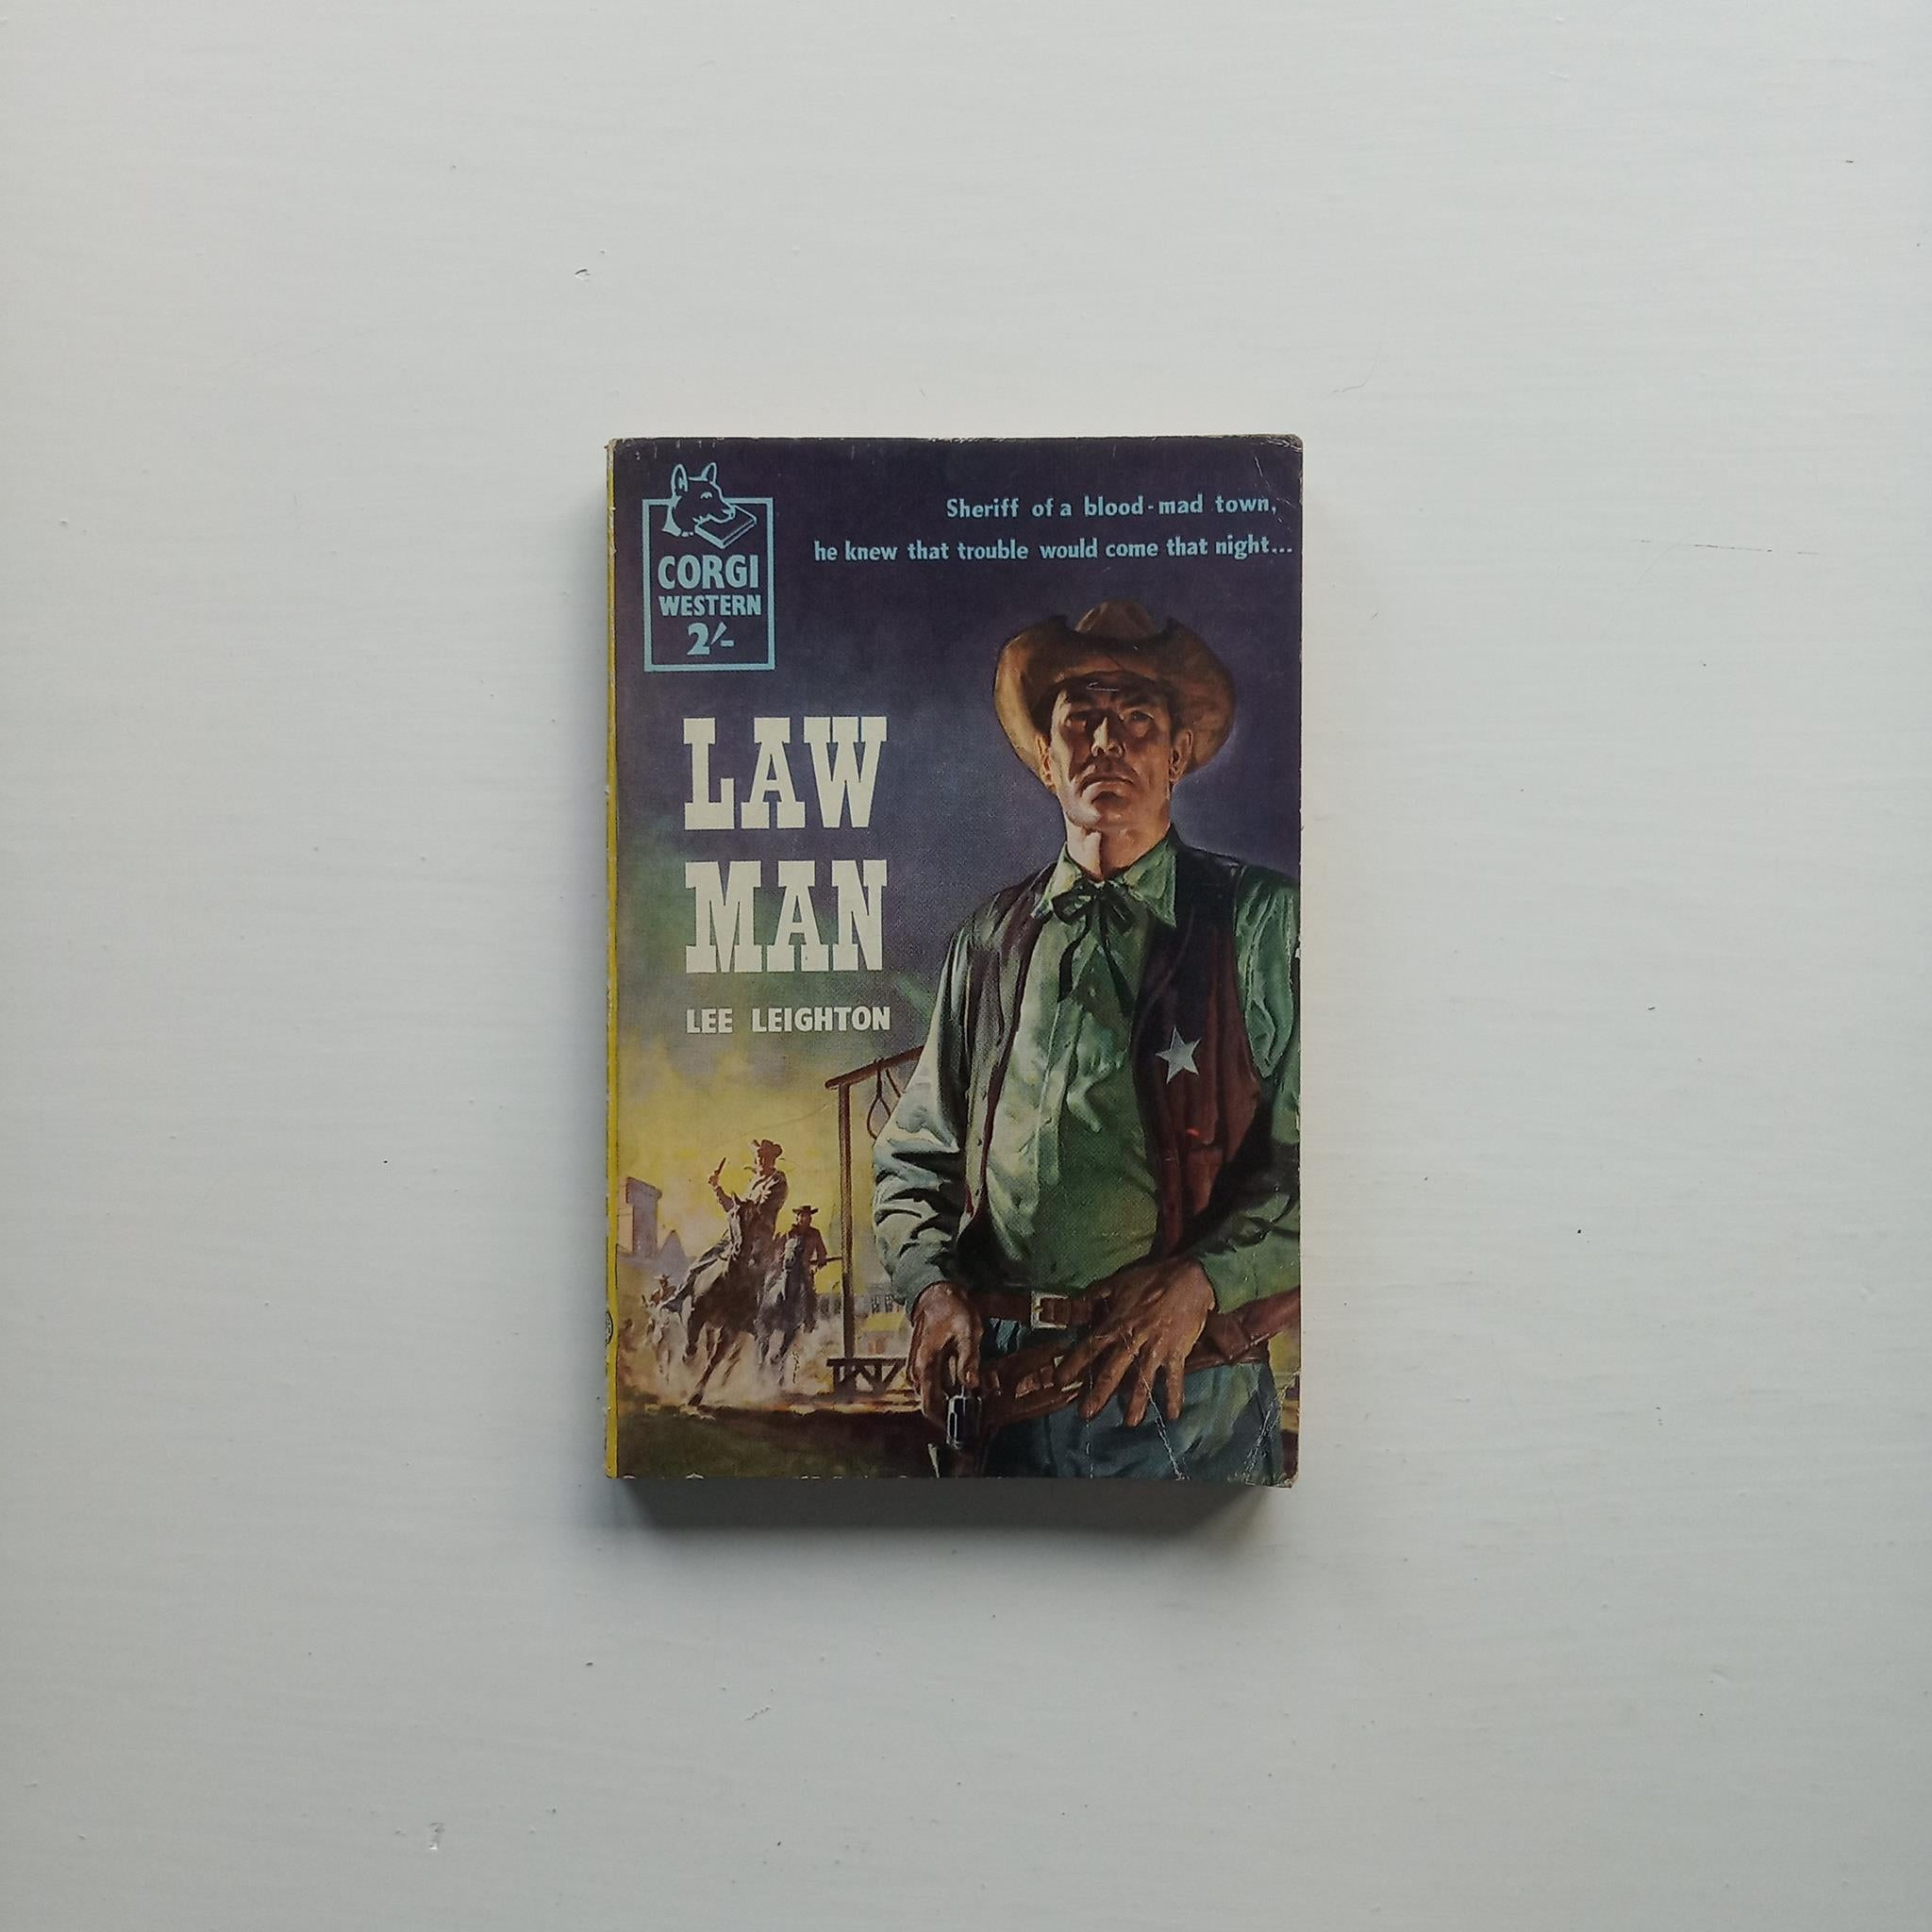 Law Man by Lee Leighton